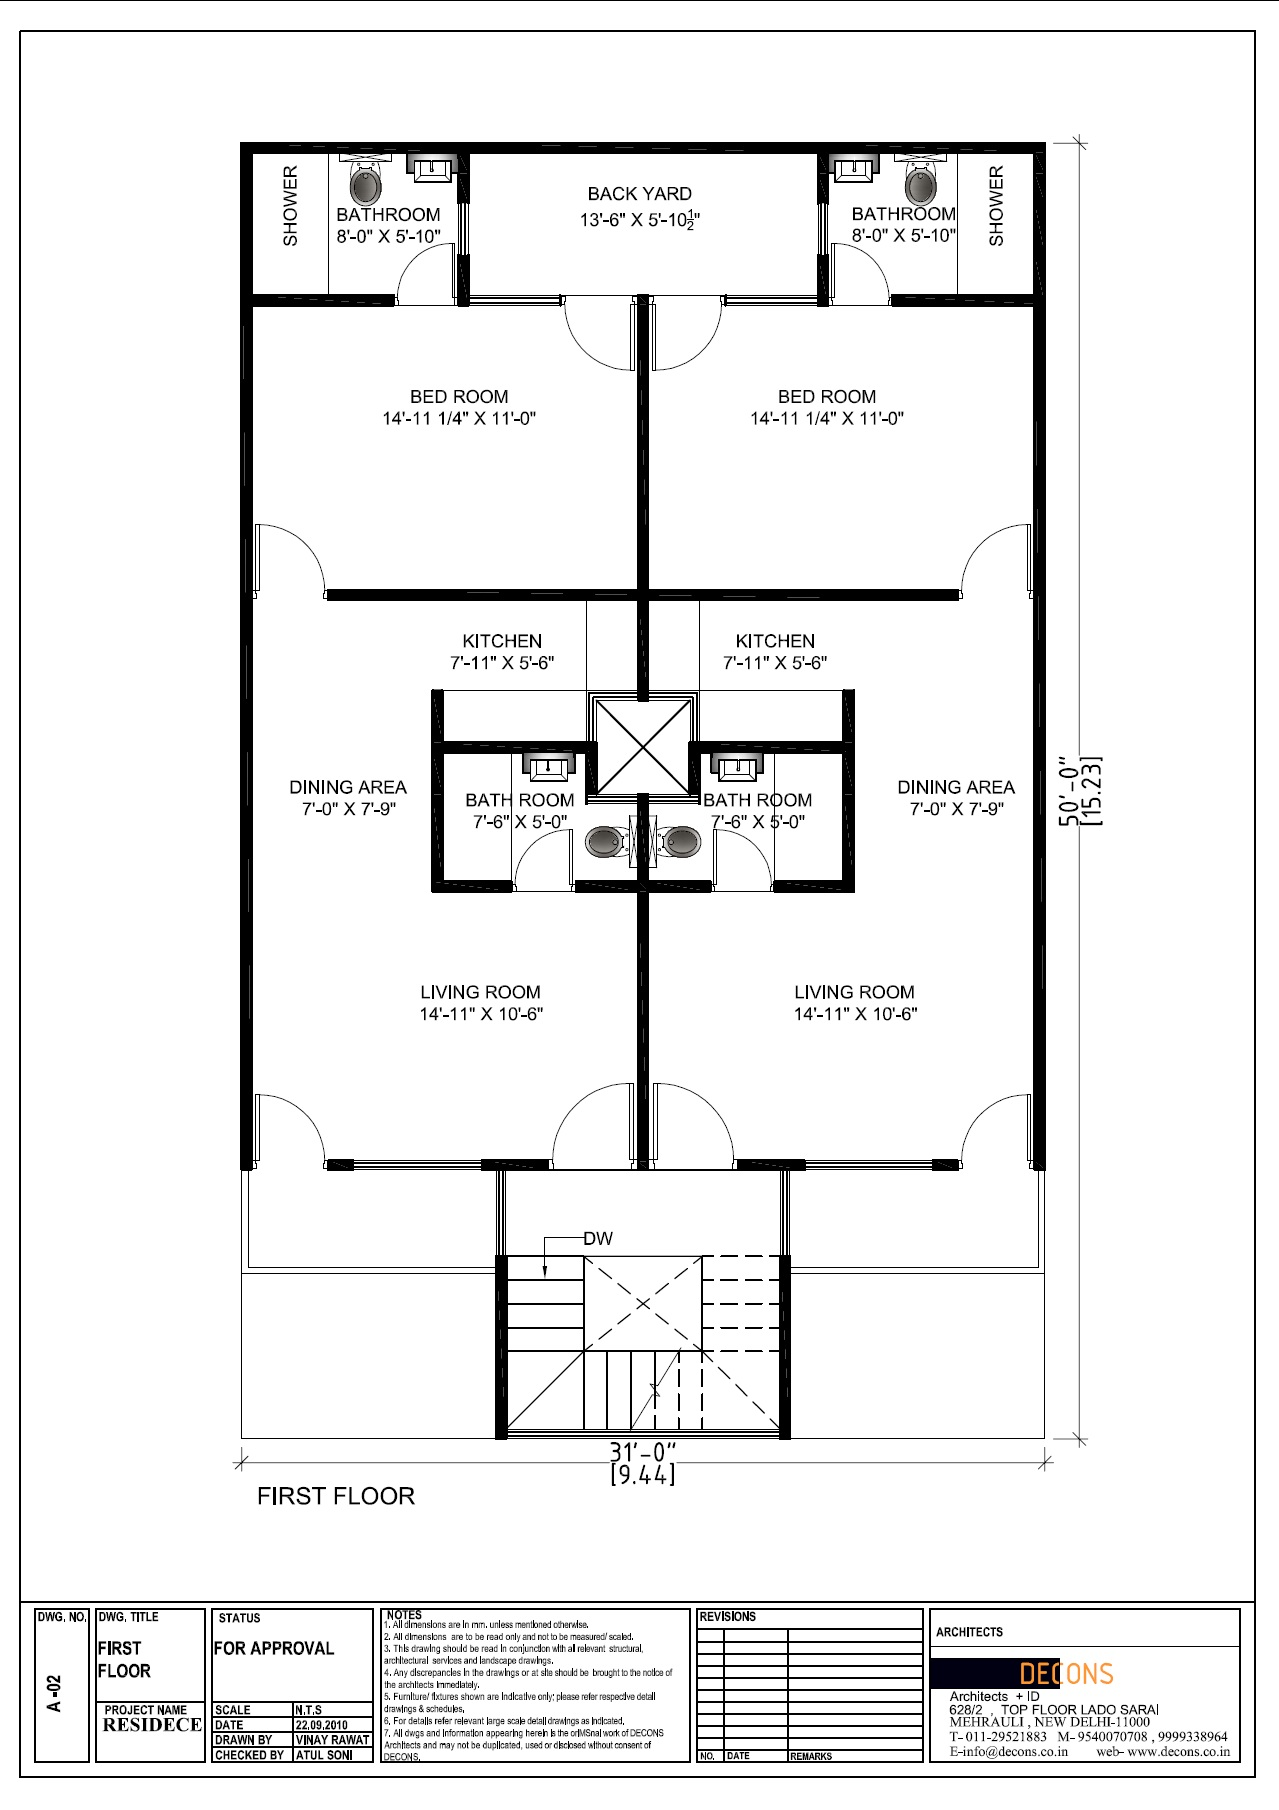 Nirman apartments noida location for Holiday home builders floor plans